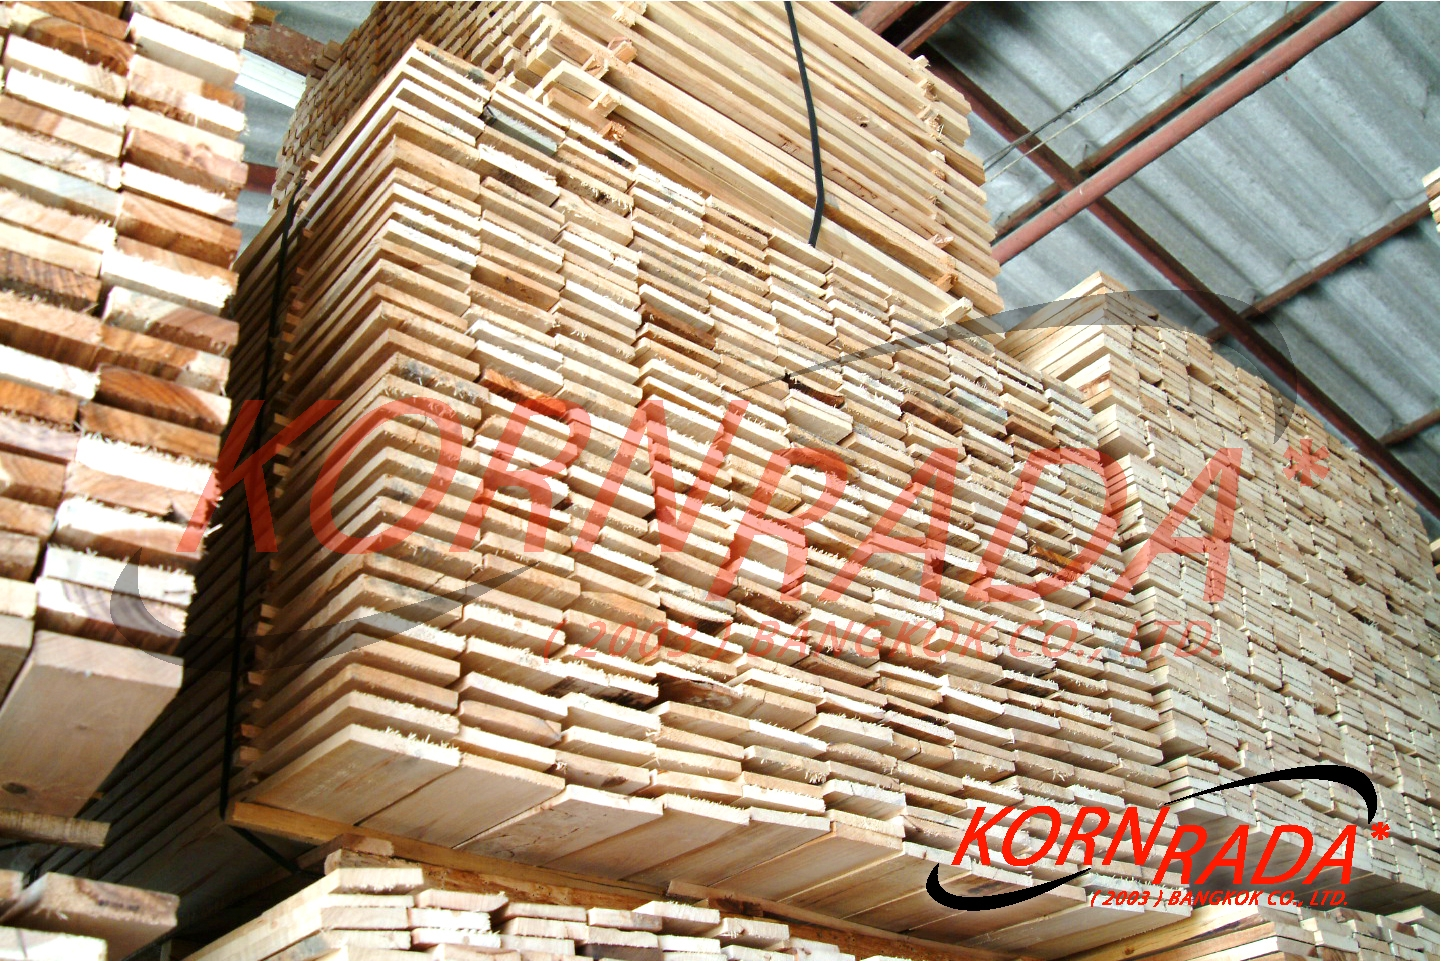 kornrada_products_2177